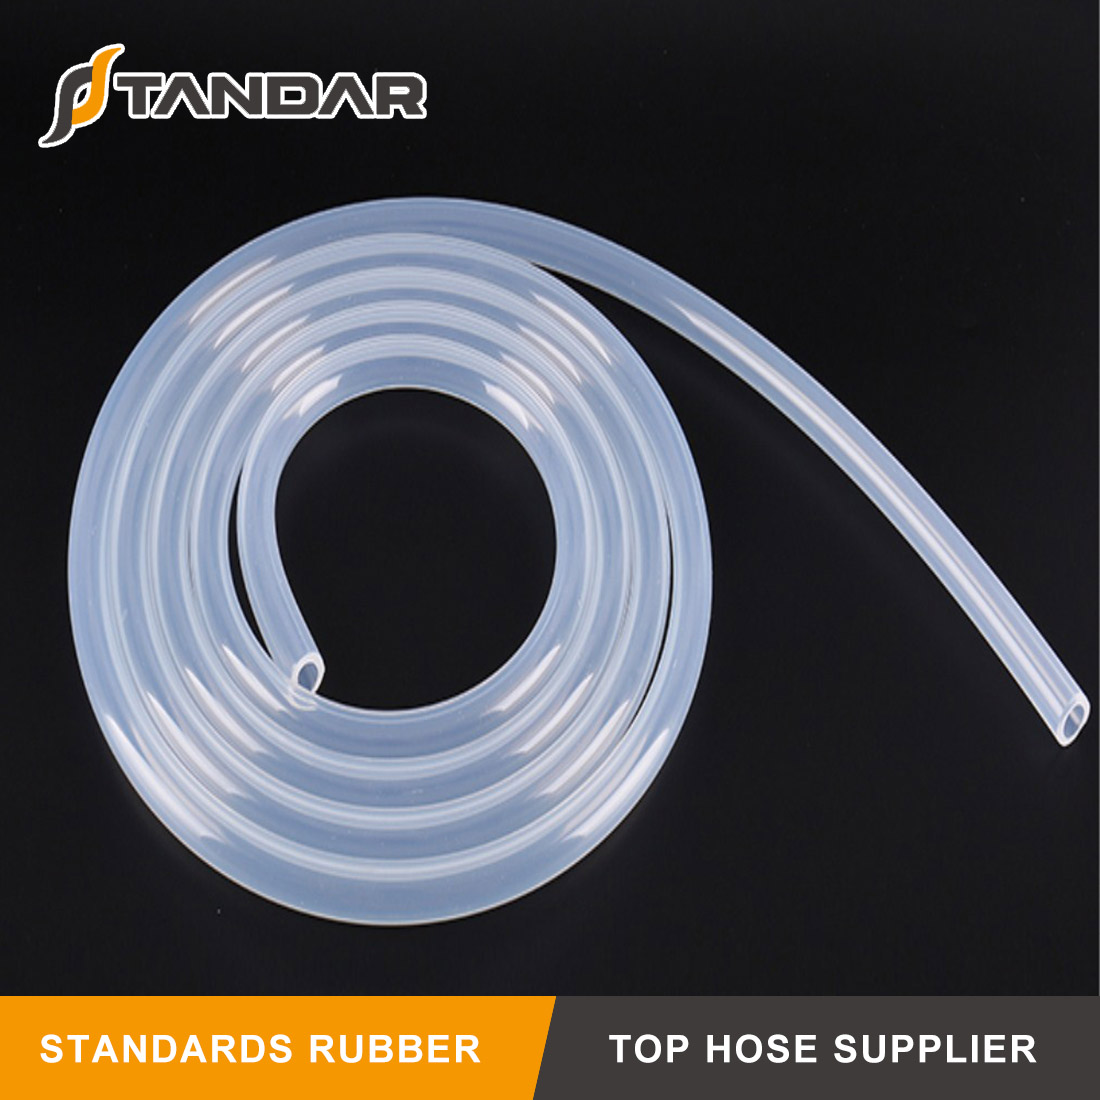 Low Pressure thin wall soft clear platinum cured Medical Grade Silicone tubing